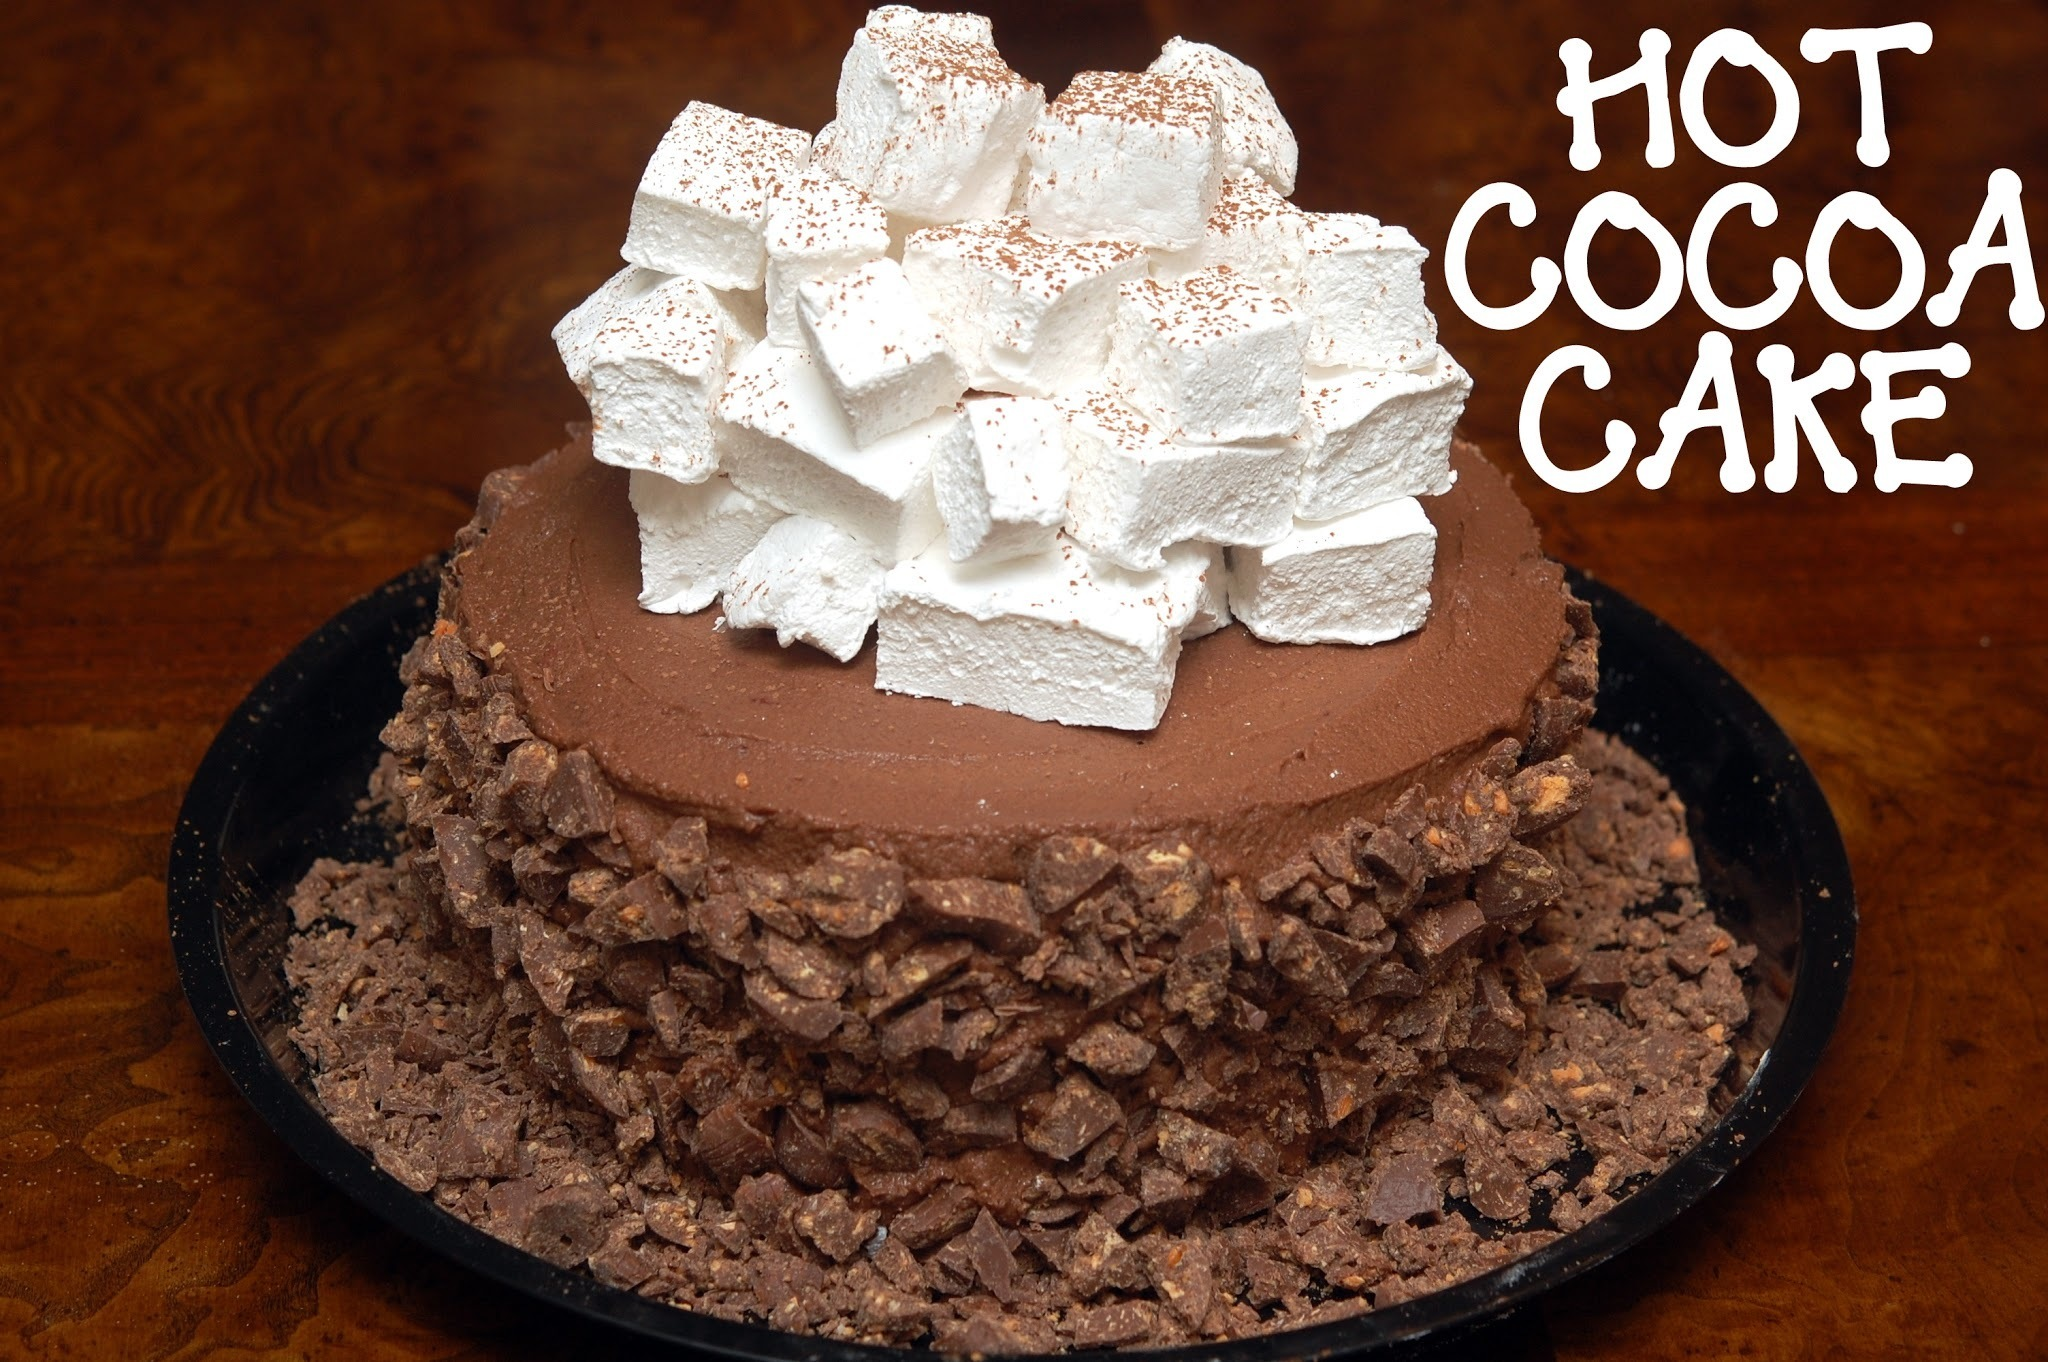 FLOURLESS, TRIPLE LAYER, HOT CHOCOLATE CAKE WITH HOMEMADE MARSHMALLOWS & CRUSHED BUTTERFINGERS